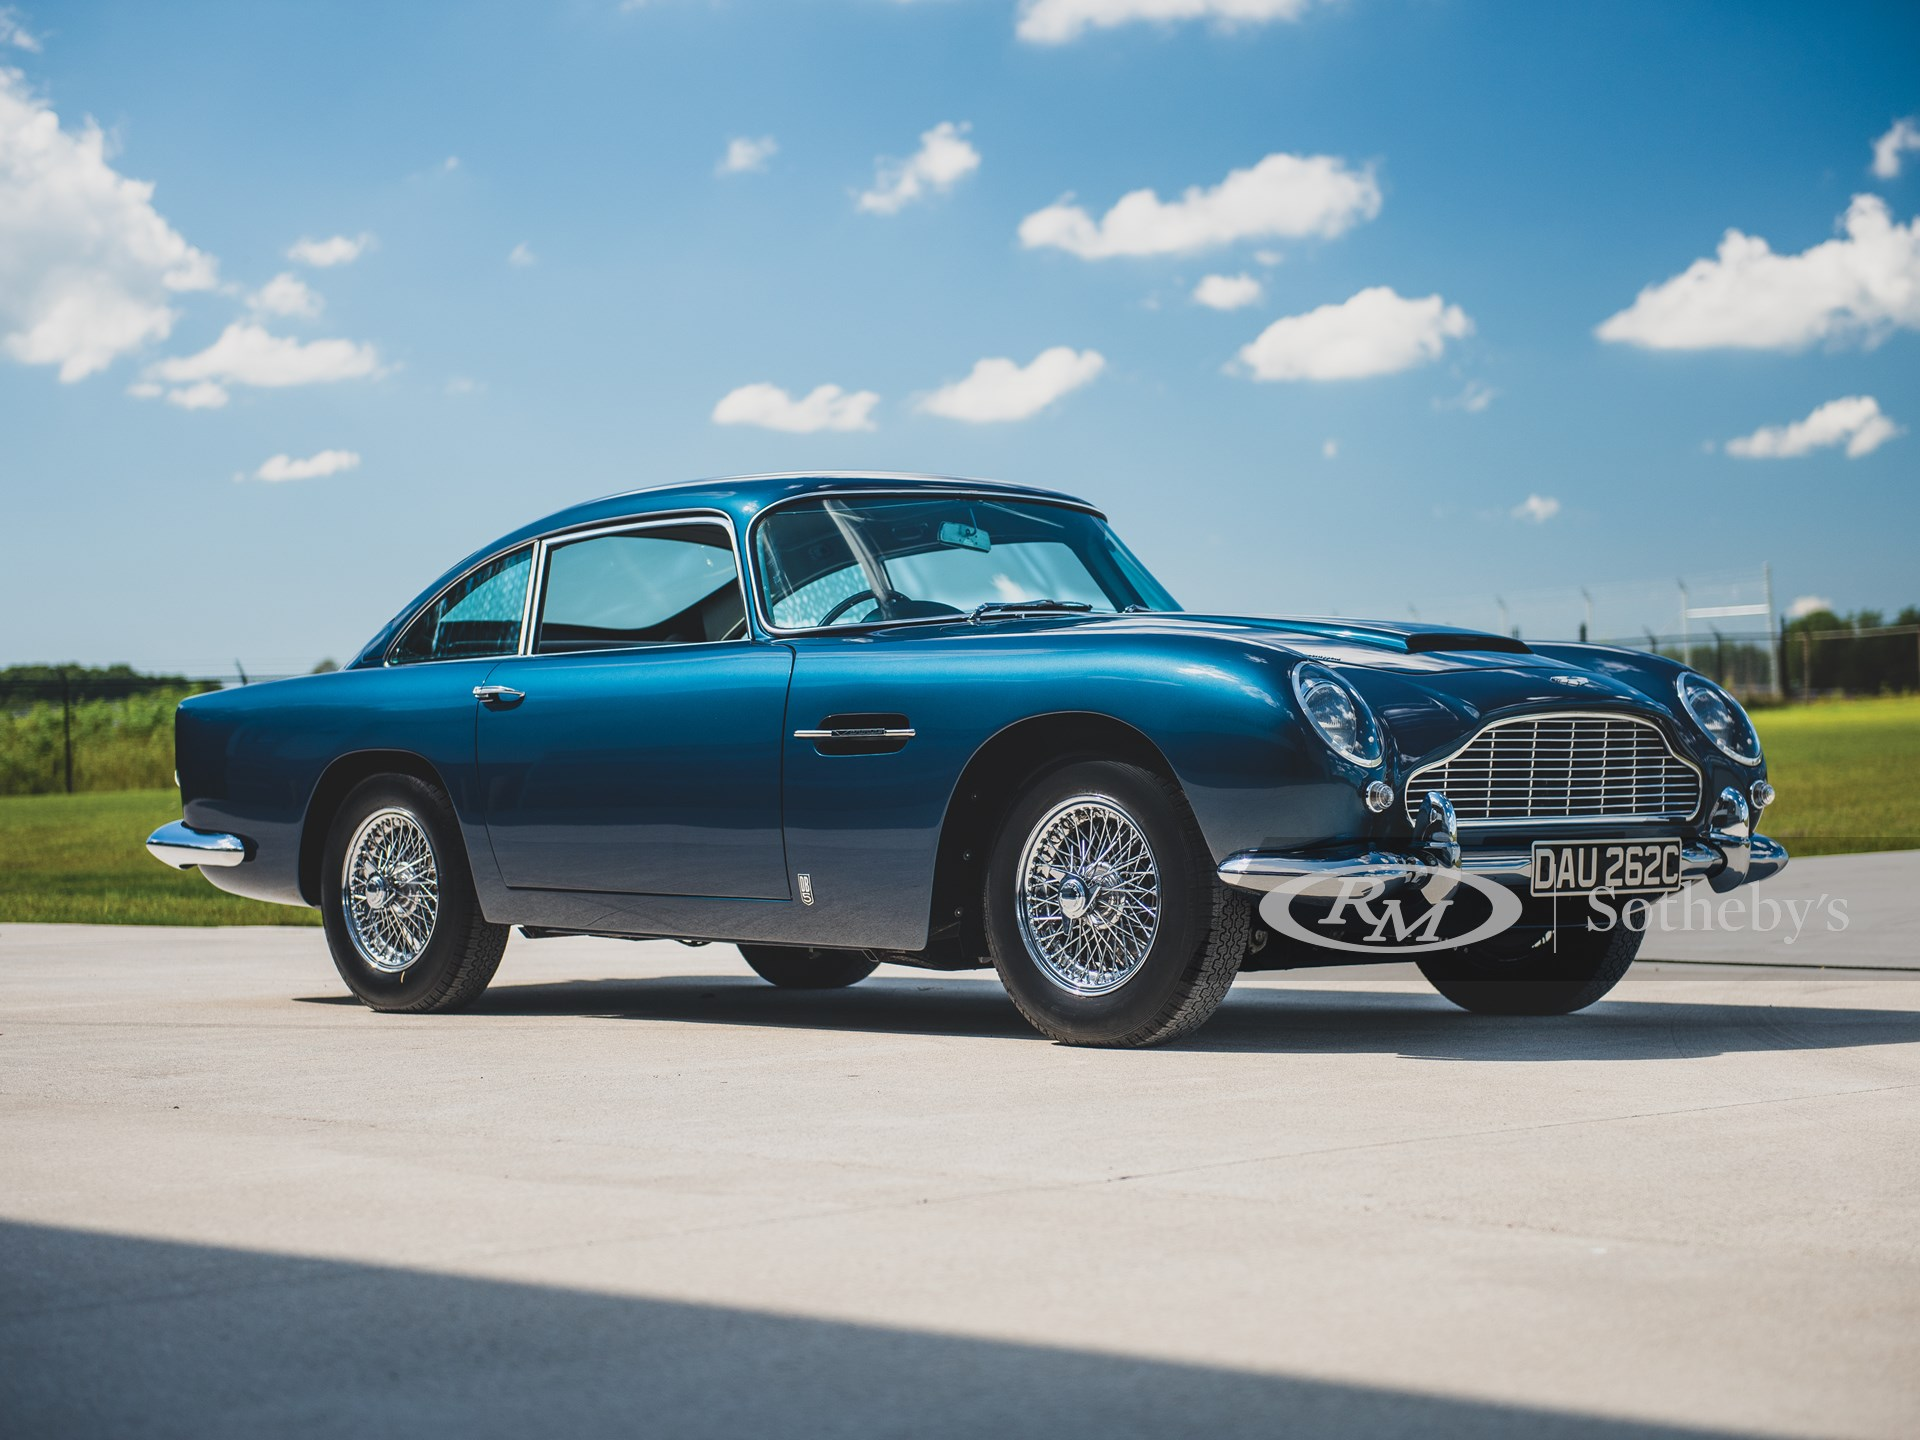 1964 Aston Martin Db5 Vantage Specification The Elkhart Collection Rm Sotheby S